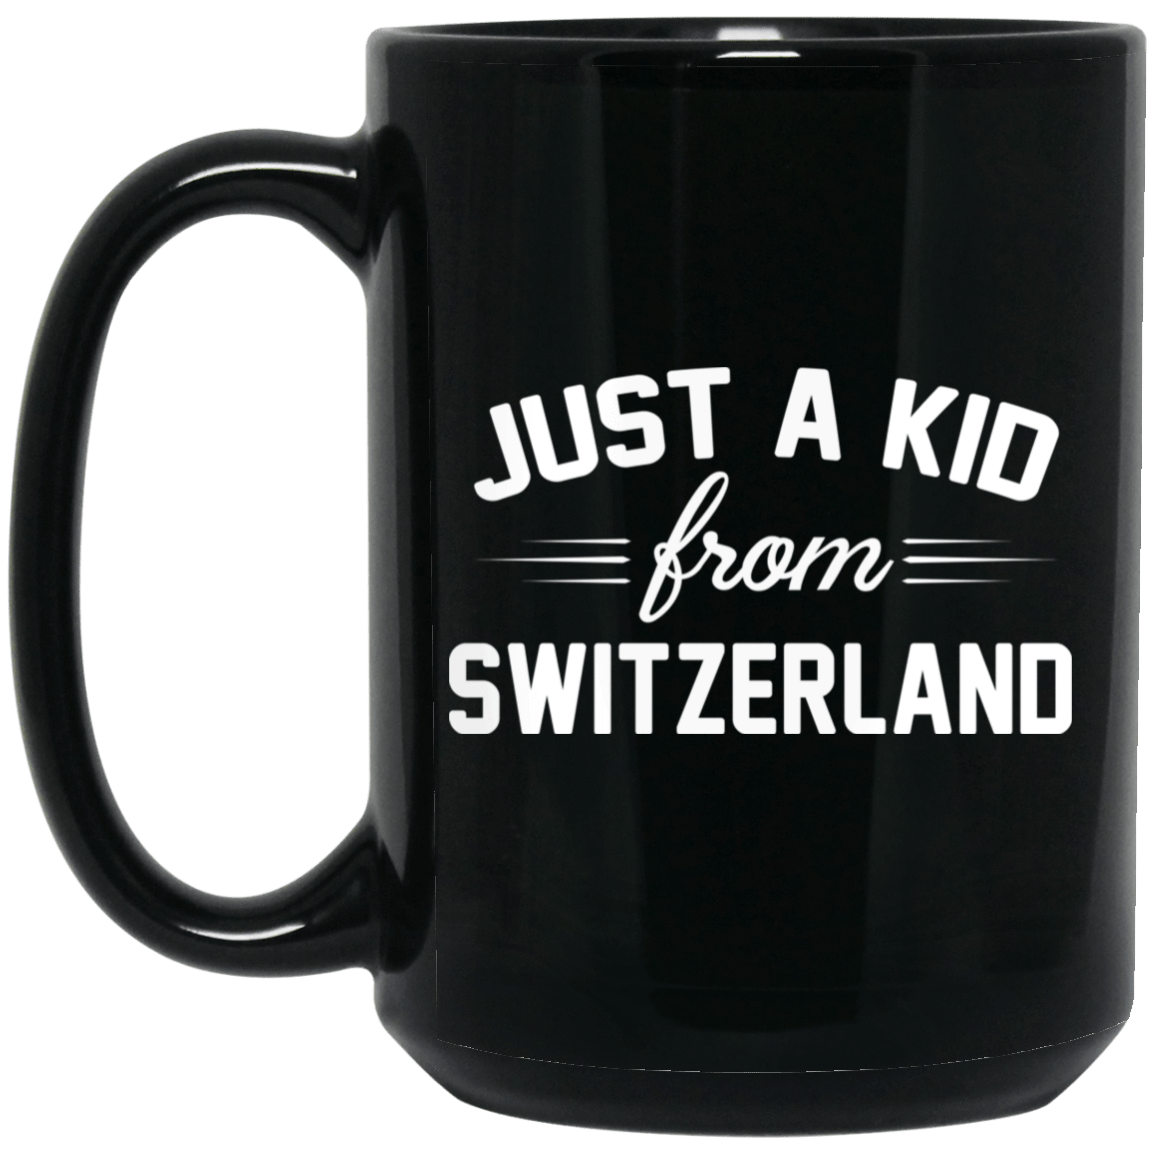 Just A Kid Store | Switzerland Mug 1066-10182-72111102-49311 - Tee Ript